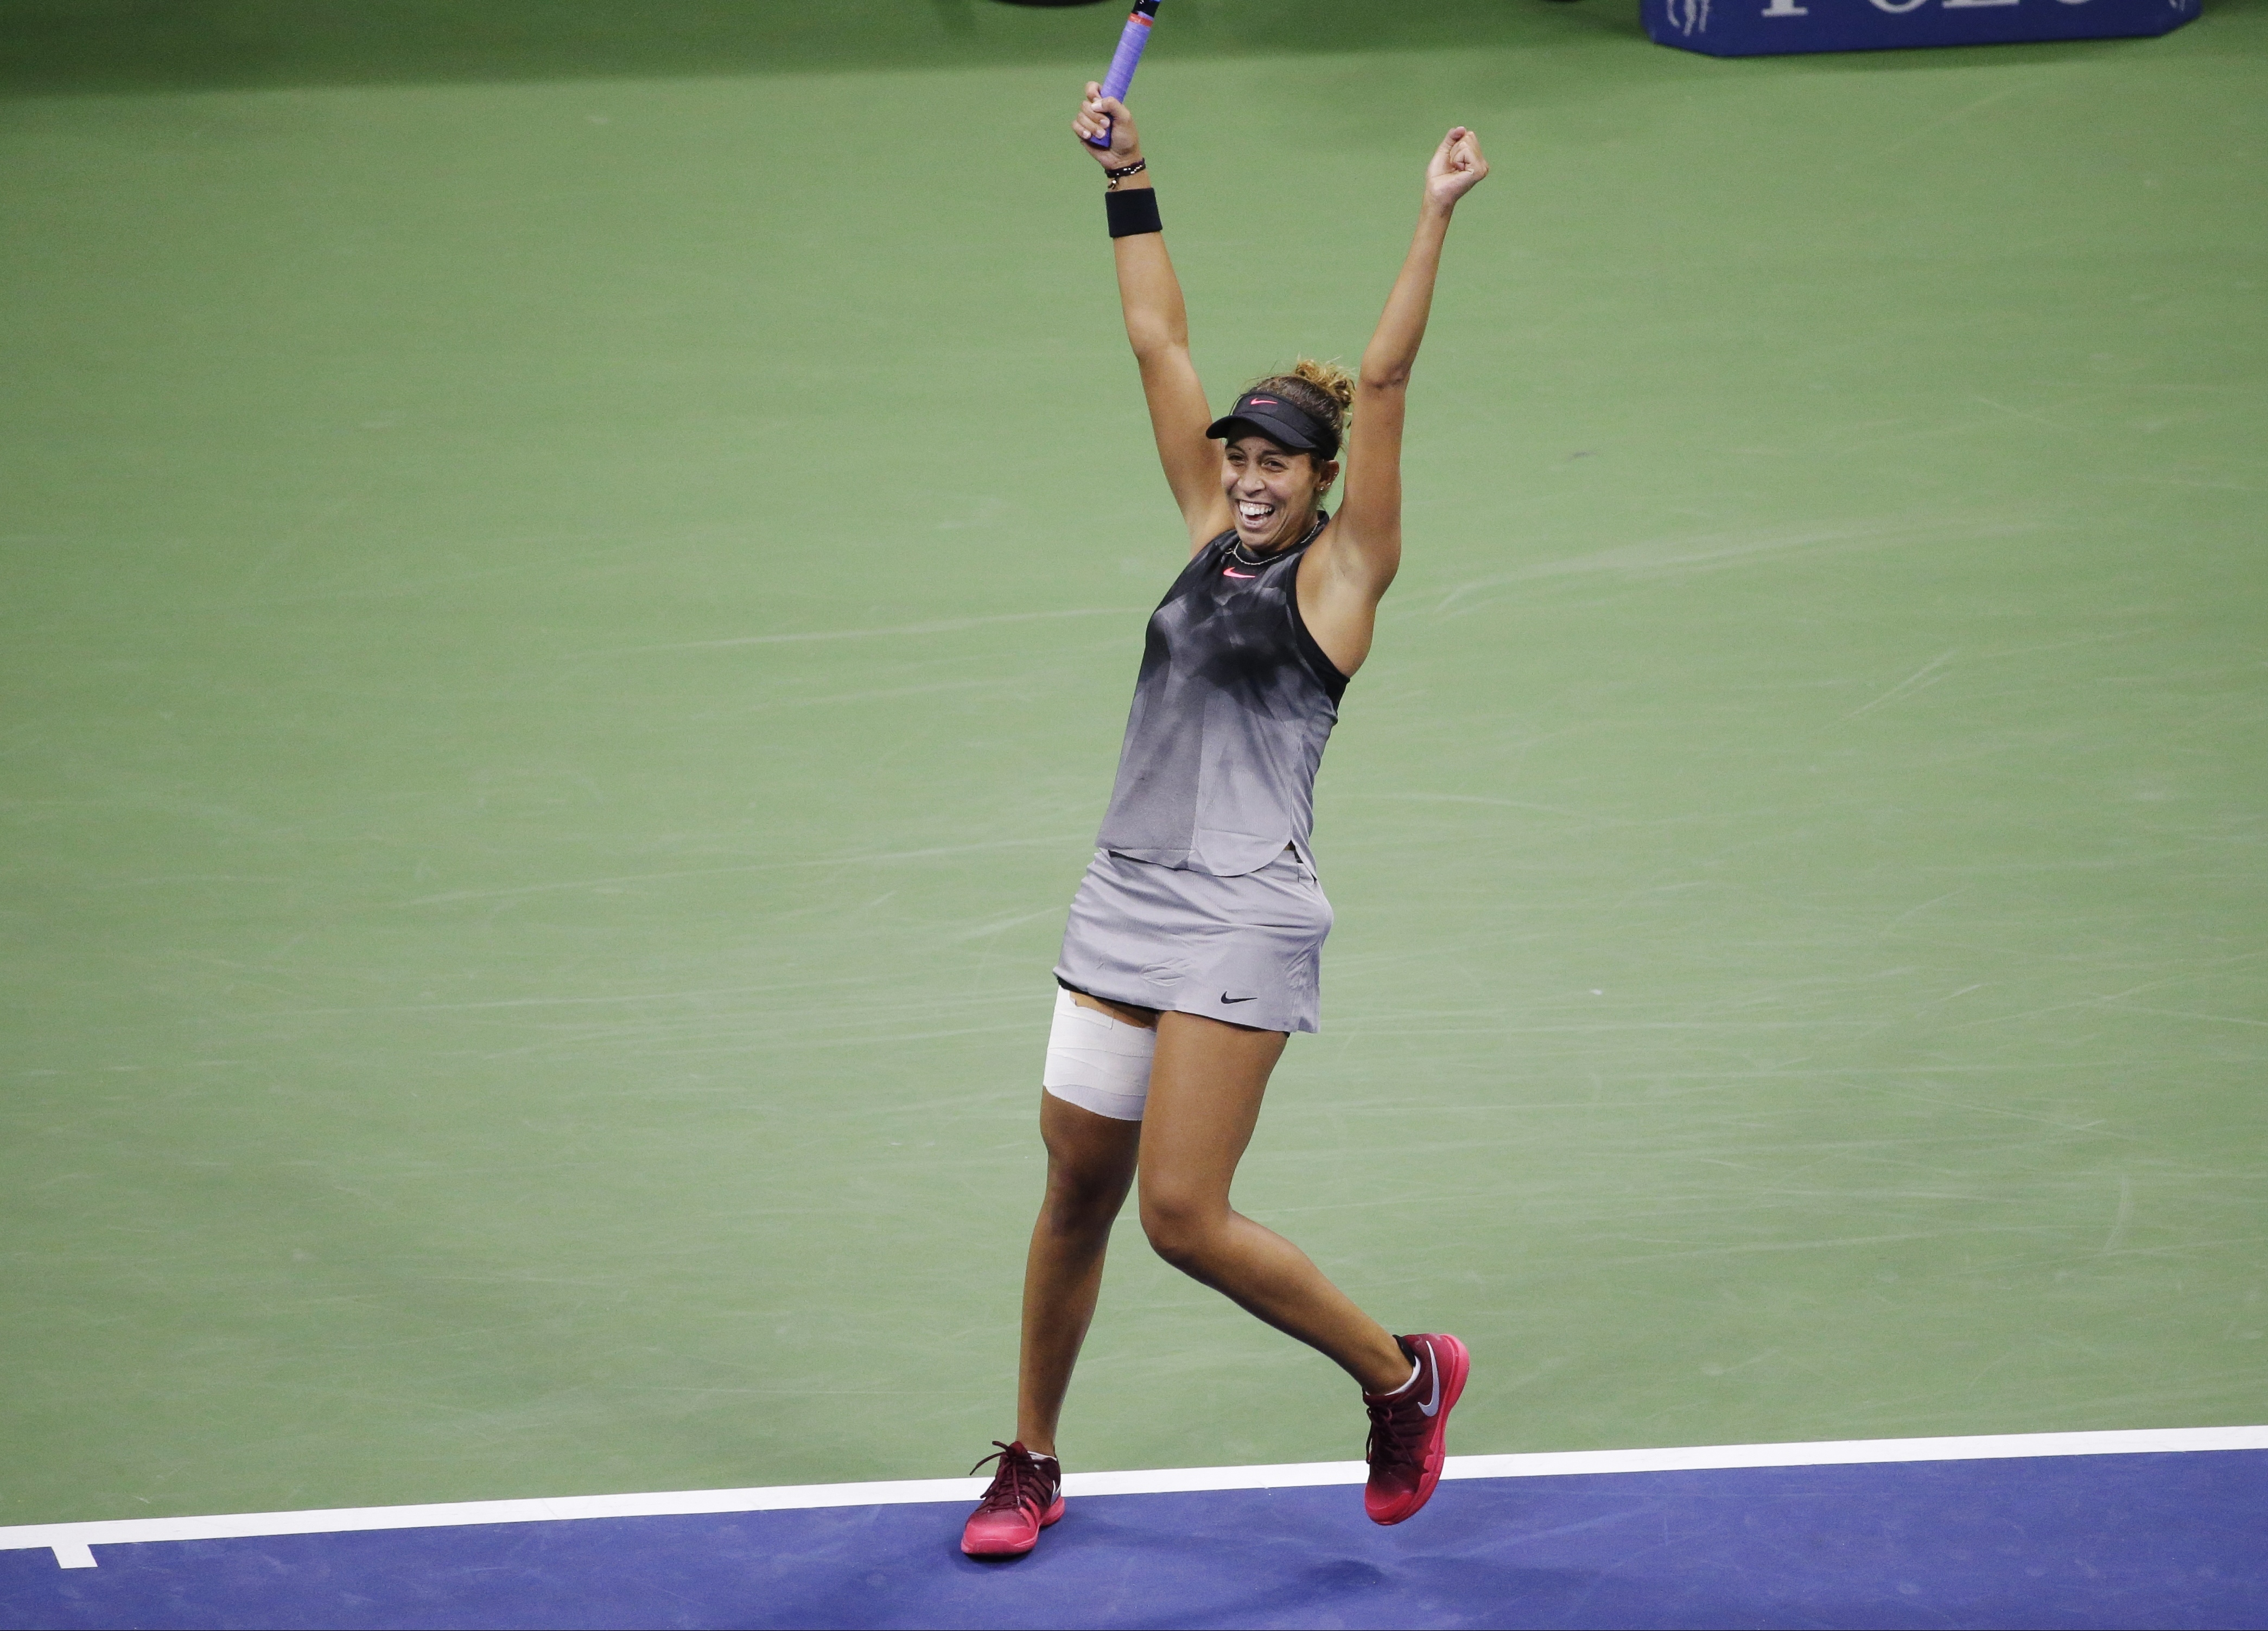 Madison Keys, of the United States, reacts after defeating CoCo Vandeweghe, of the United States, during the semifinals of the U.S. Open tennis tournament, Thursday, Sept. 7, 2017, in New York. (AP Photo/Seth Wenig)